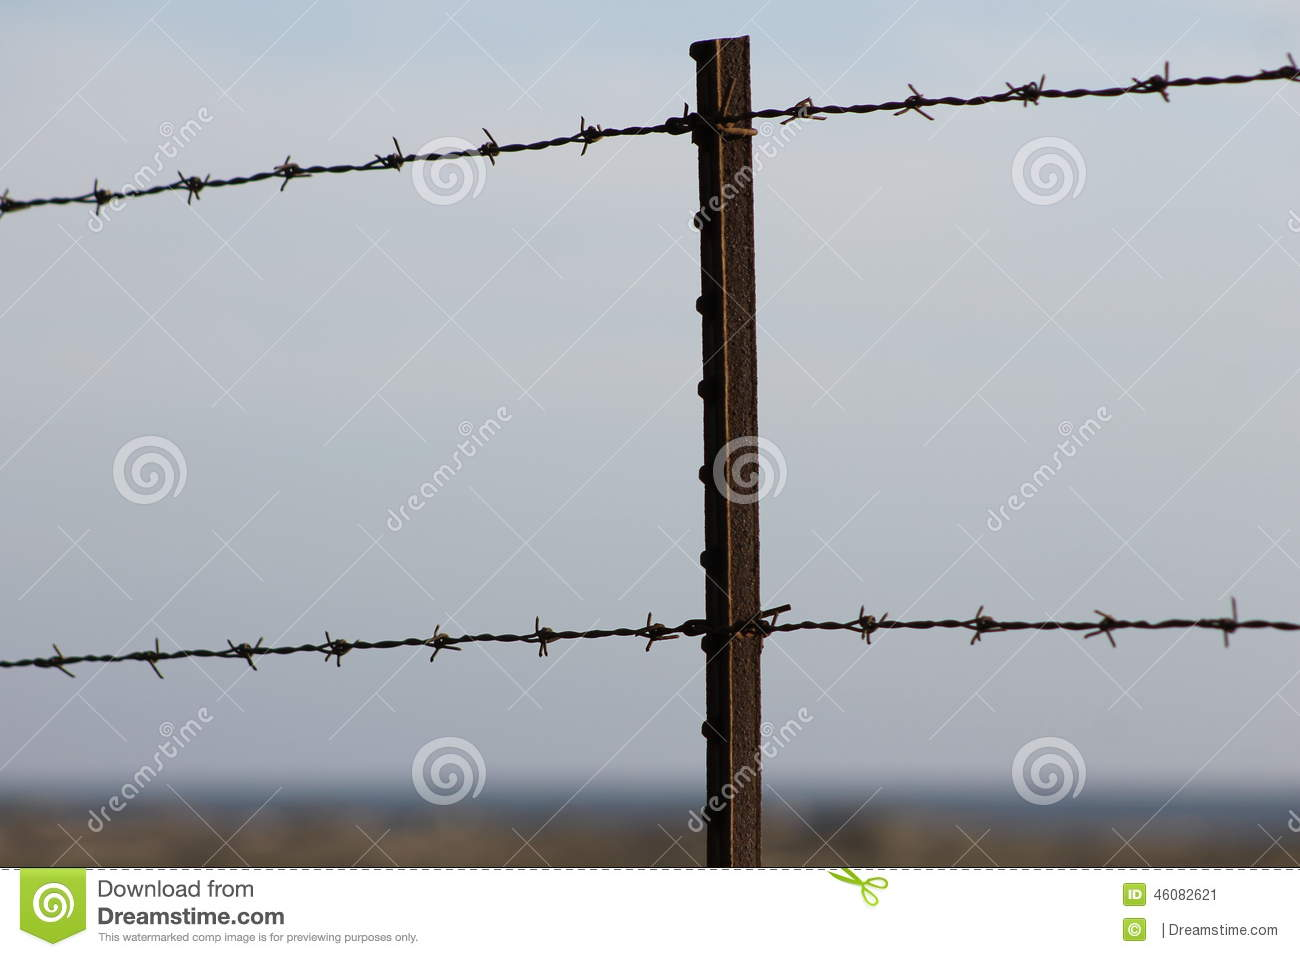 Rusted Barbed Wire Fence Post Stock Image - Image of secure, rusted ...